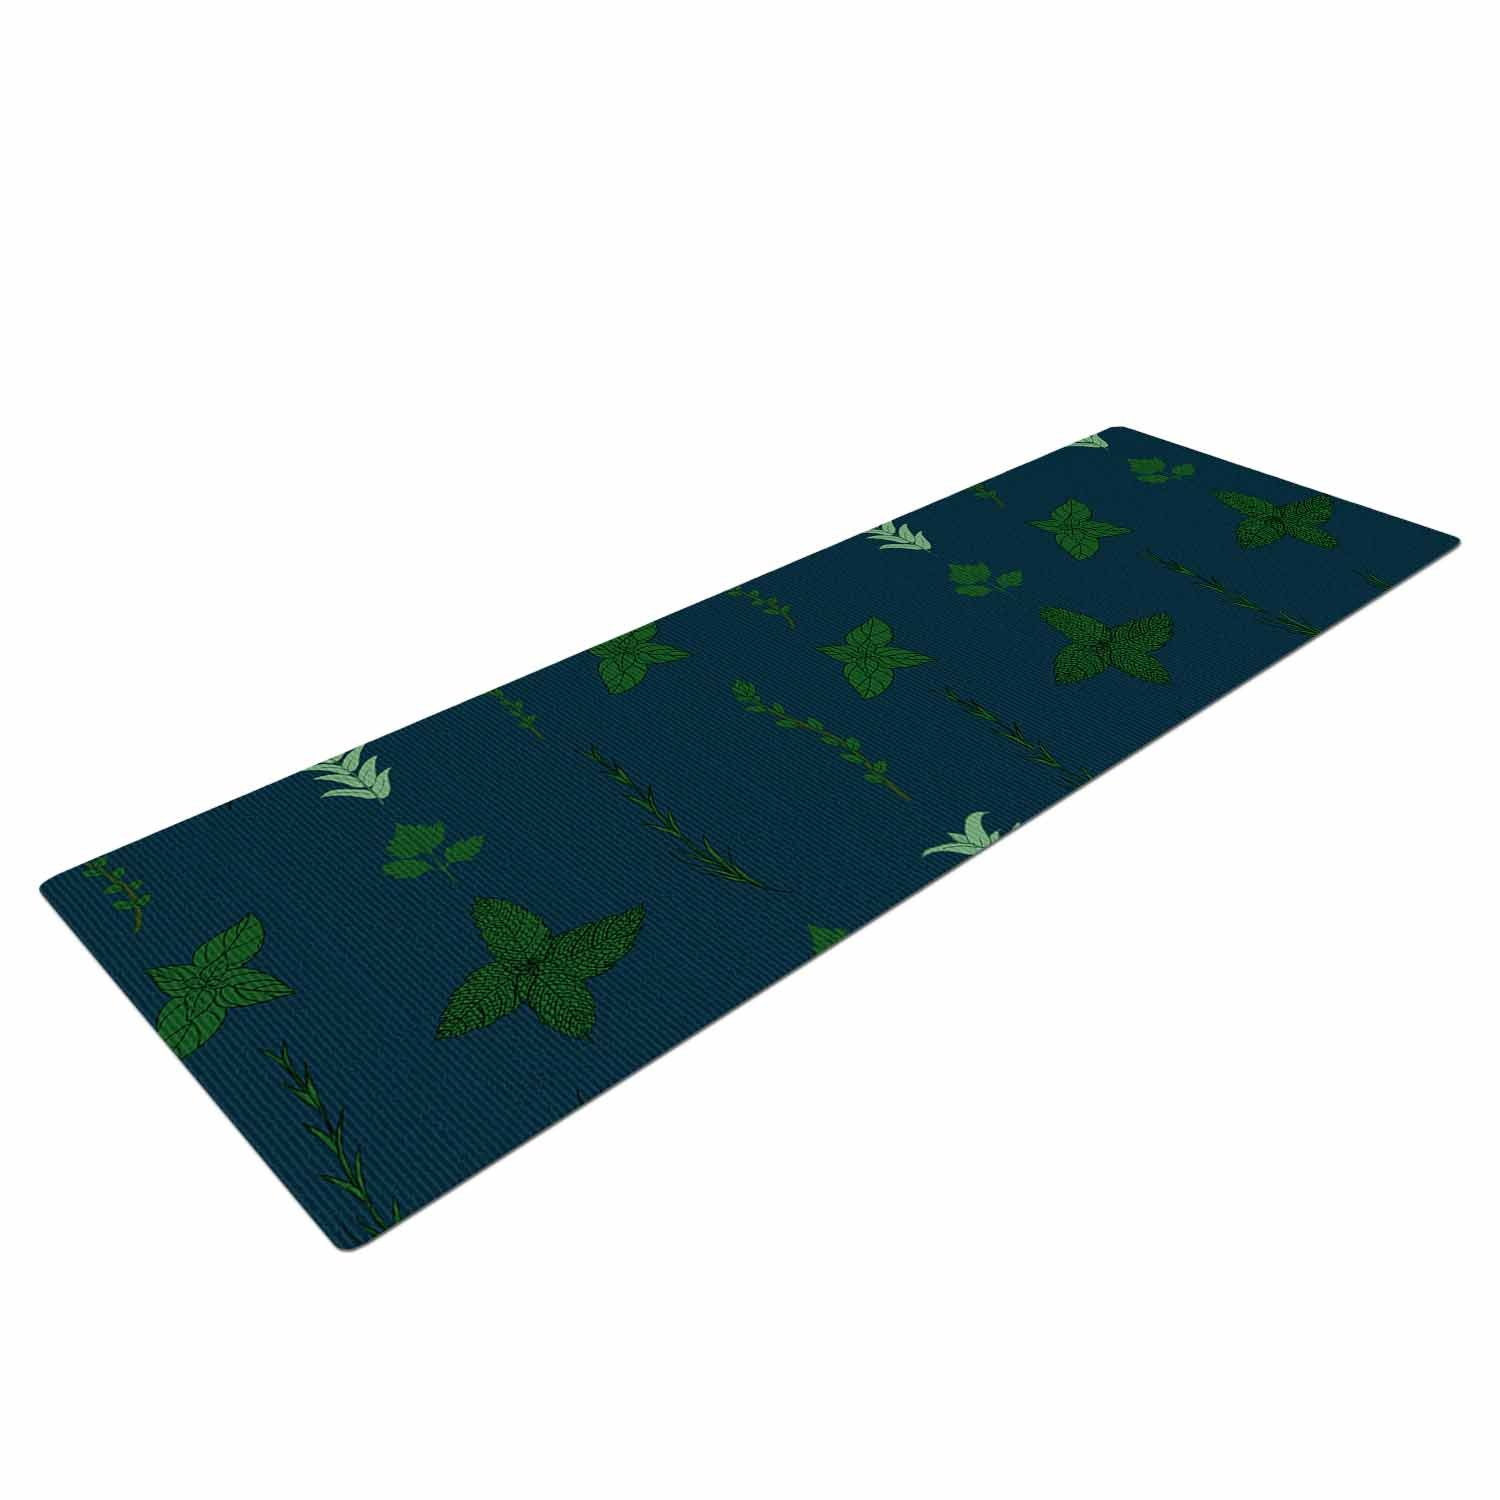 SV1016AYM01 72 X 24 72 X 24 KESS Global Inc Kess InHouse Stephanie Vaeth Herb Garden Green Illustration Yoga Mat